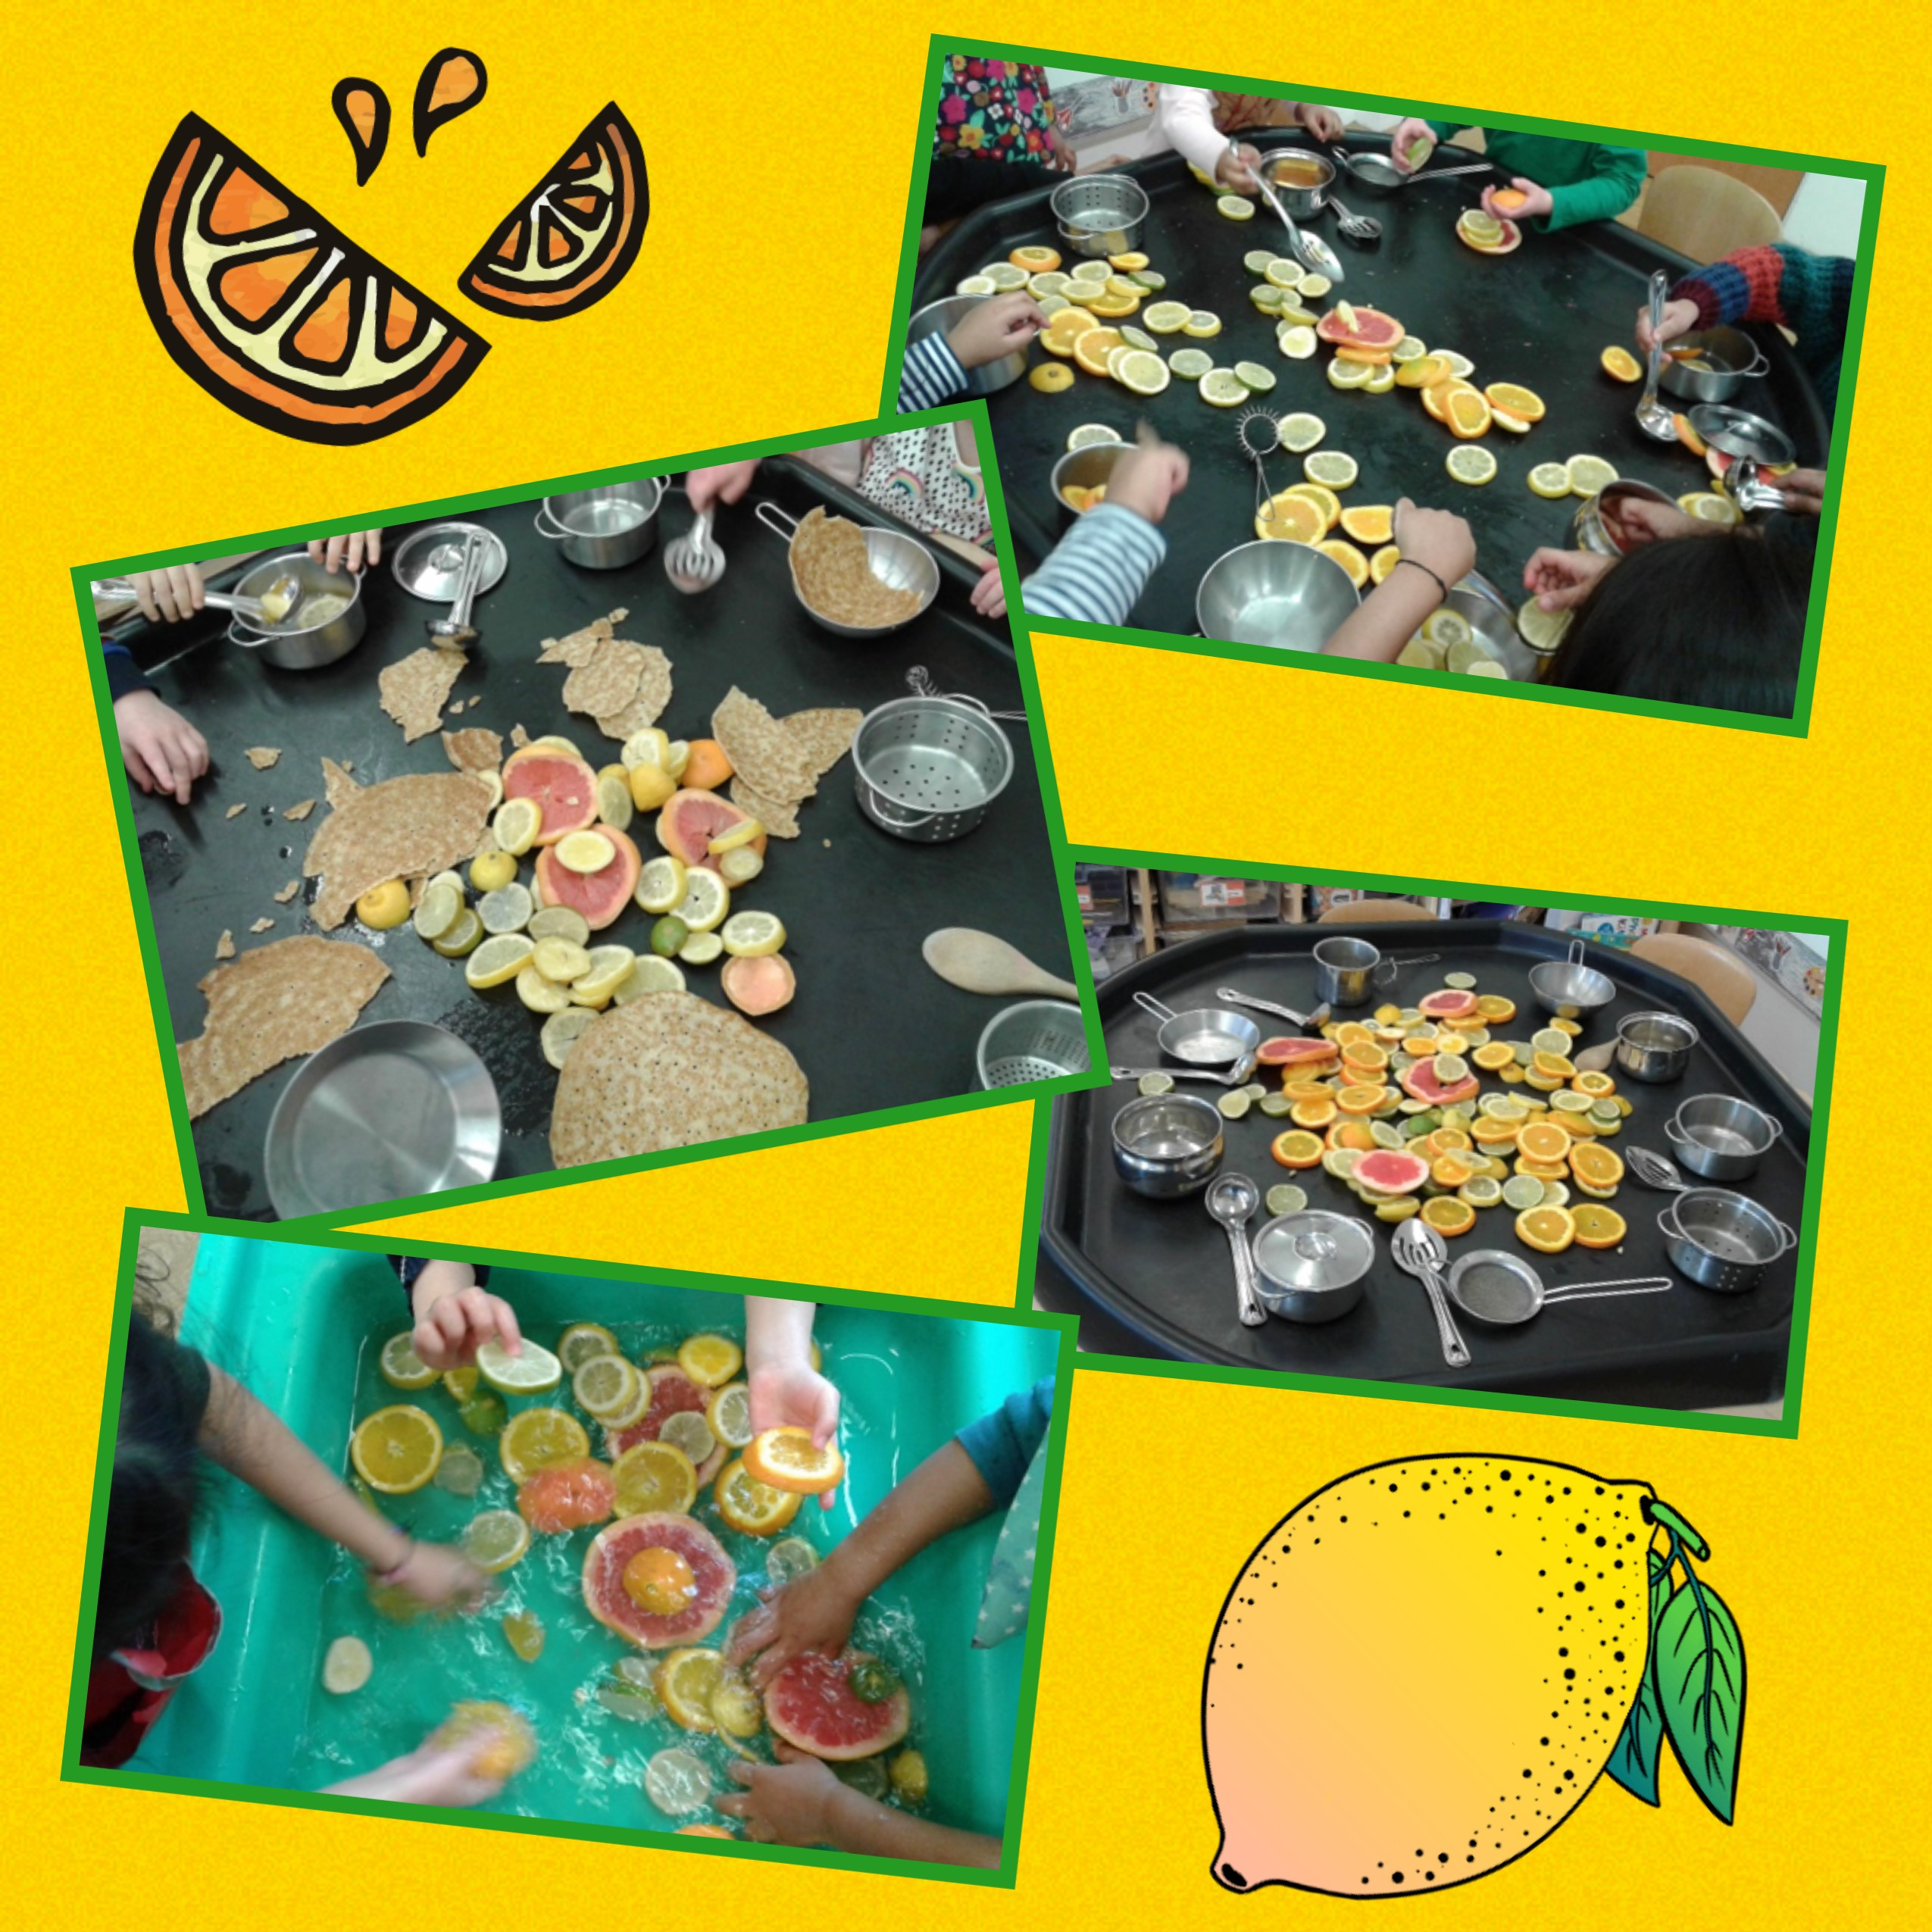 As part of our Shrove Tuesday & Pancake Day celebrations, Pre-school have been exploring citrus fruits.